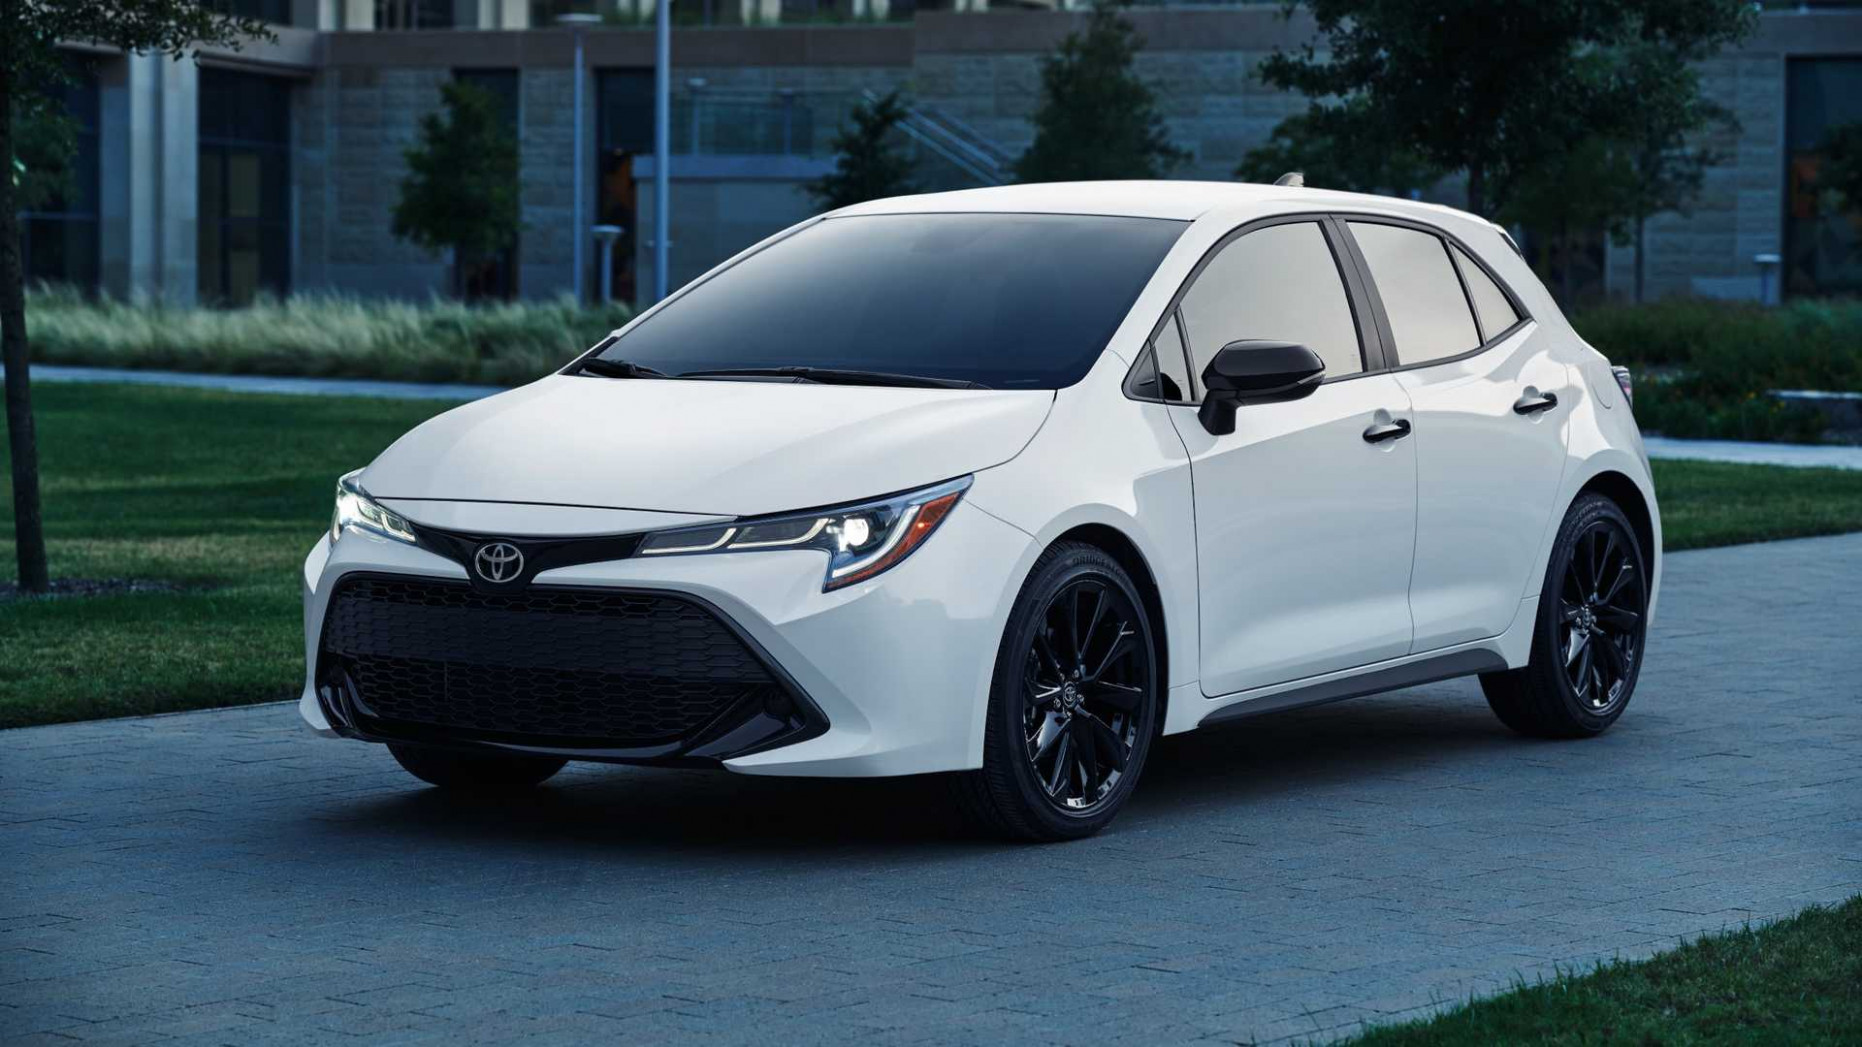 Toyota GR Corolla Hot Hatch Not Happening Anytime Soon - toyota corolla hatchback 2020